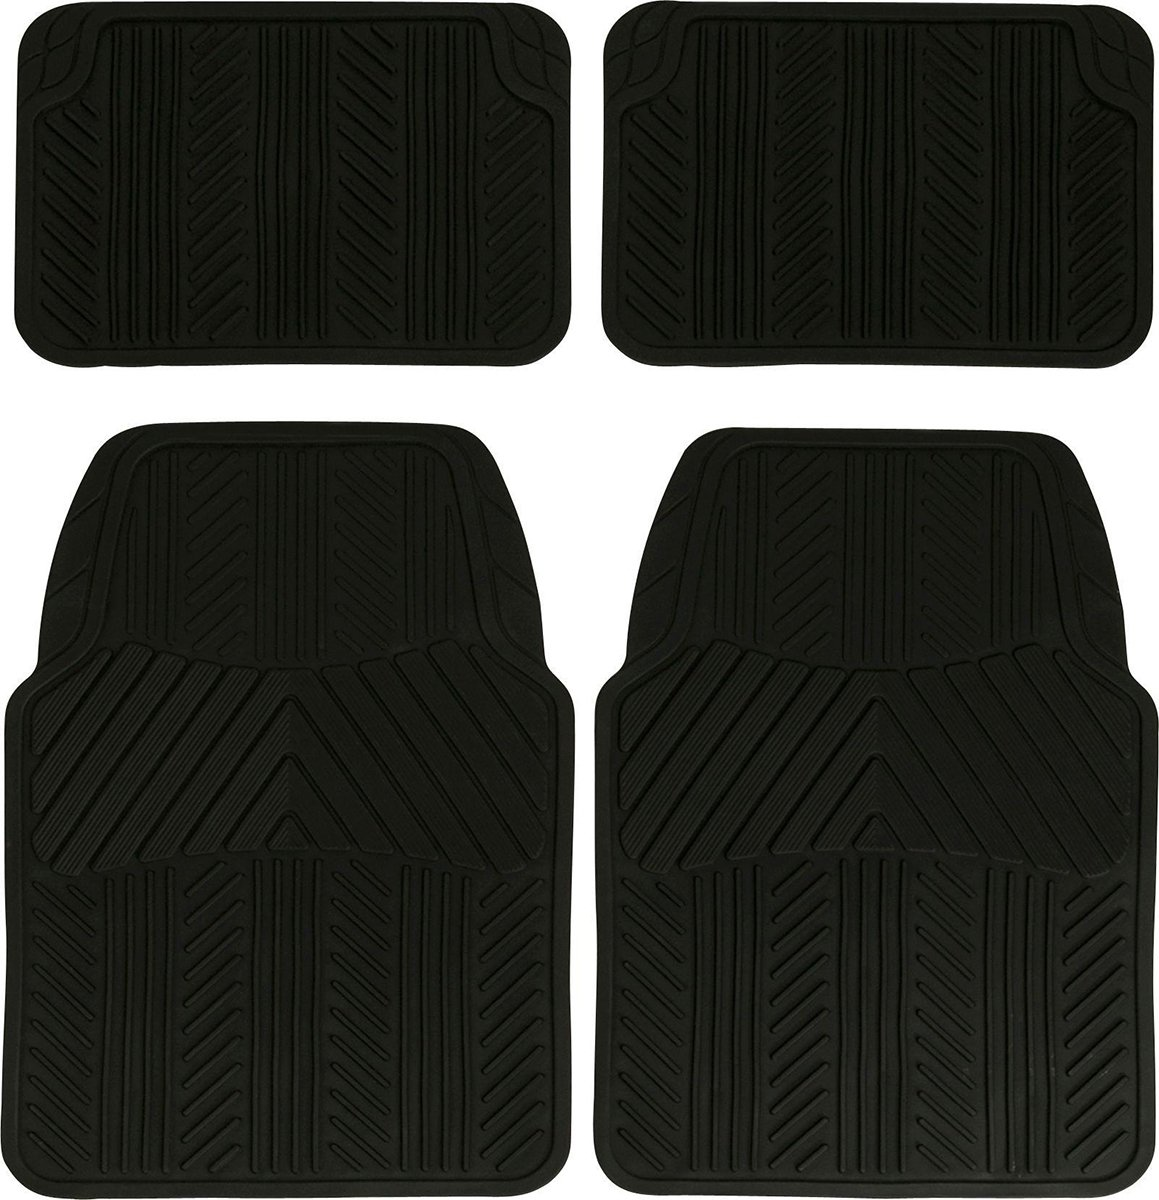 Image of Streetwize - Set of 4 Premium Rubber Car Mats - Black